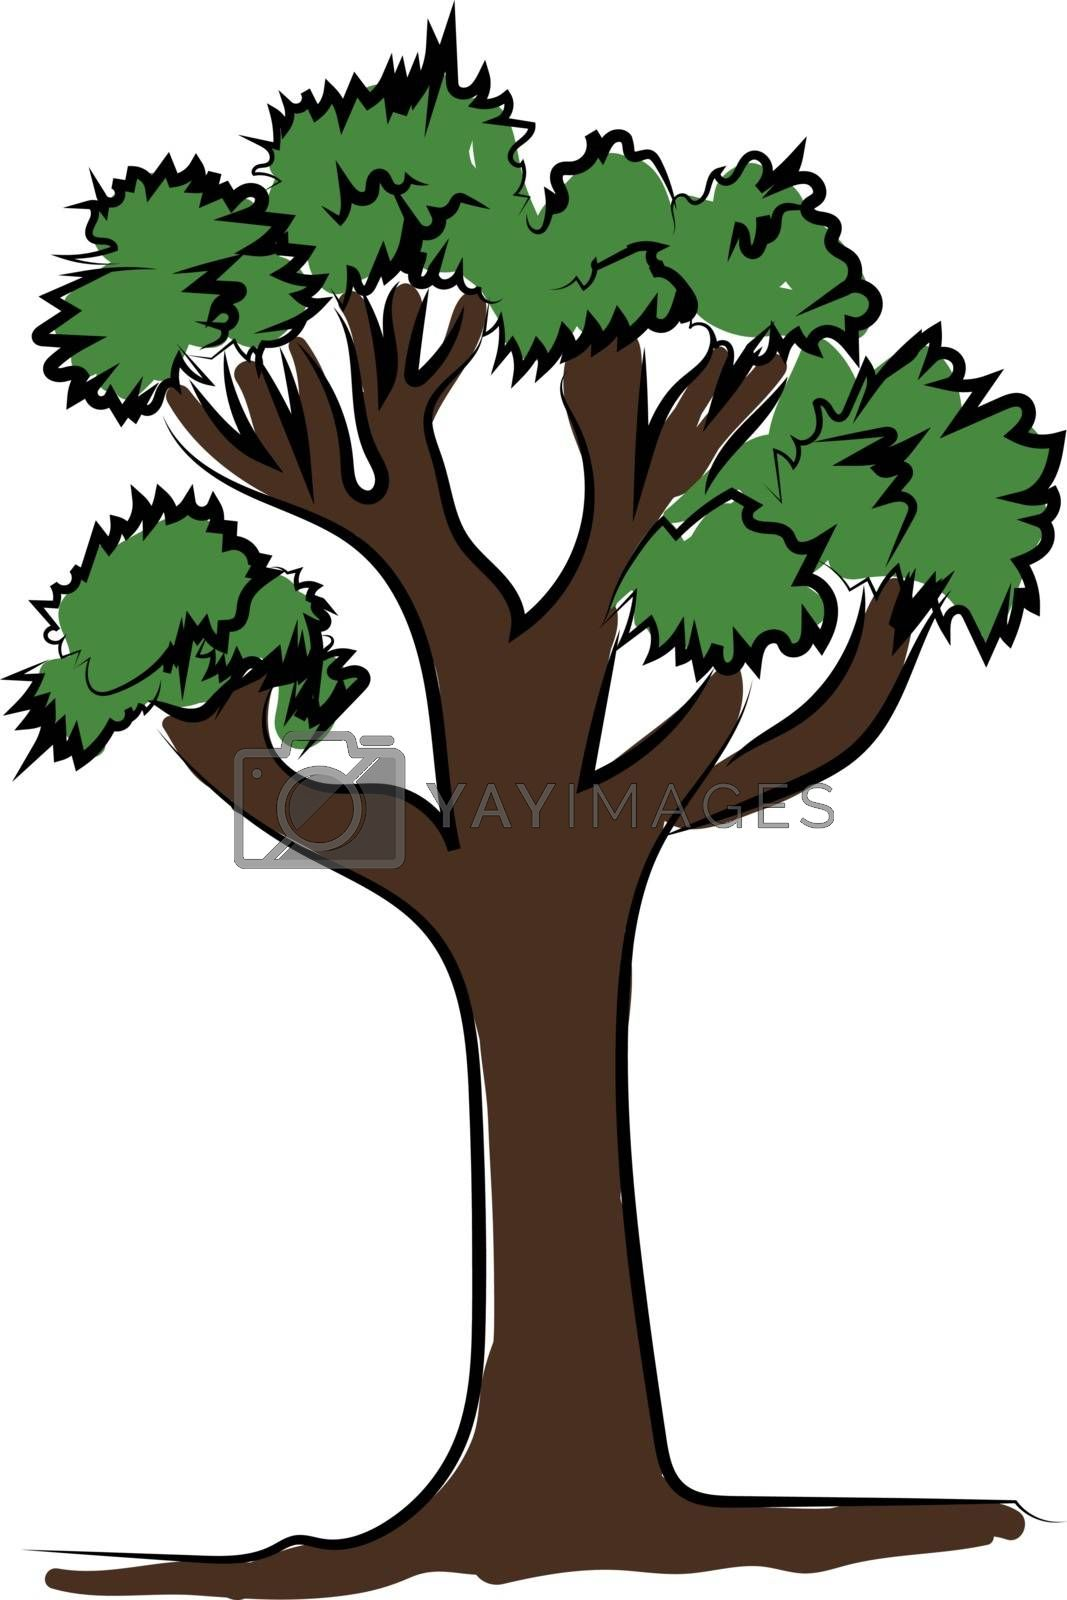 Tall tree with green leaves, illustration, vector on white background.